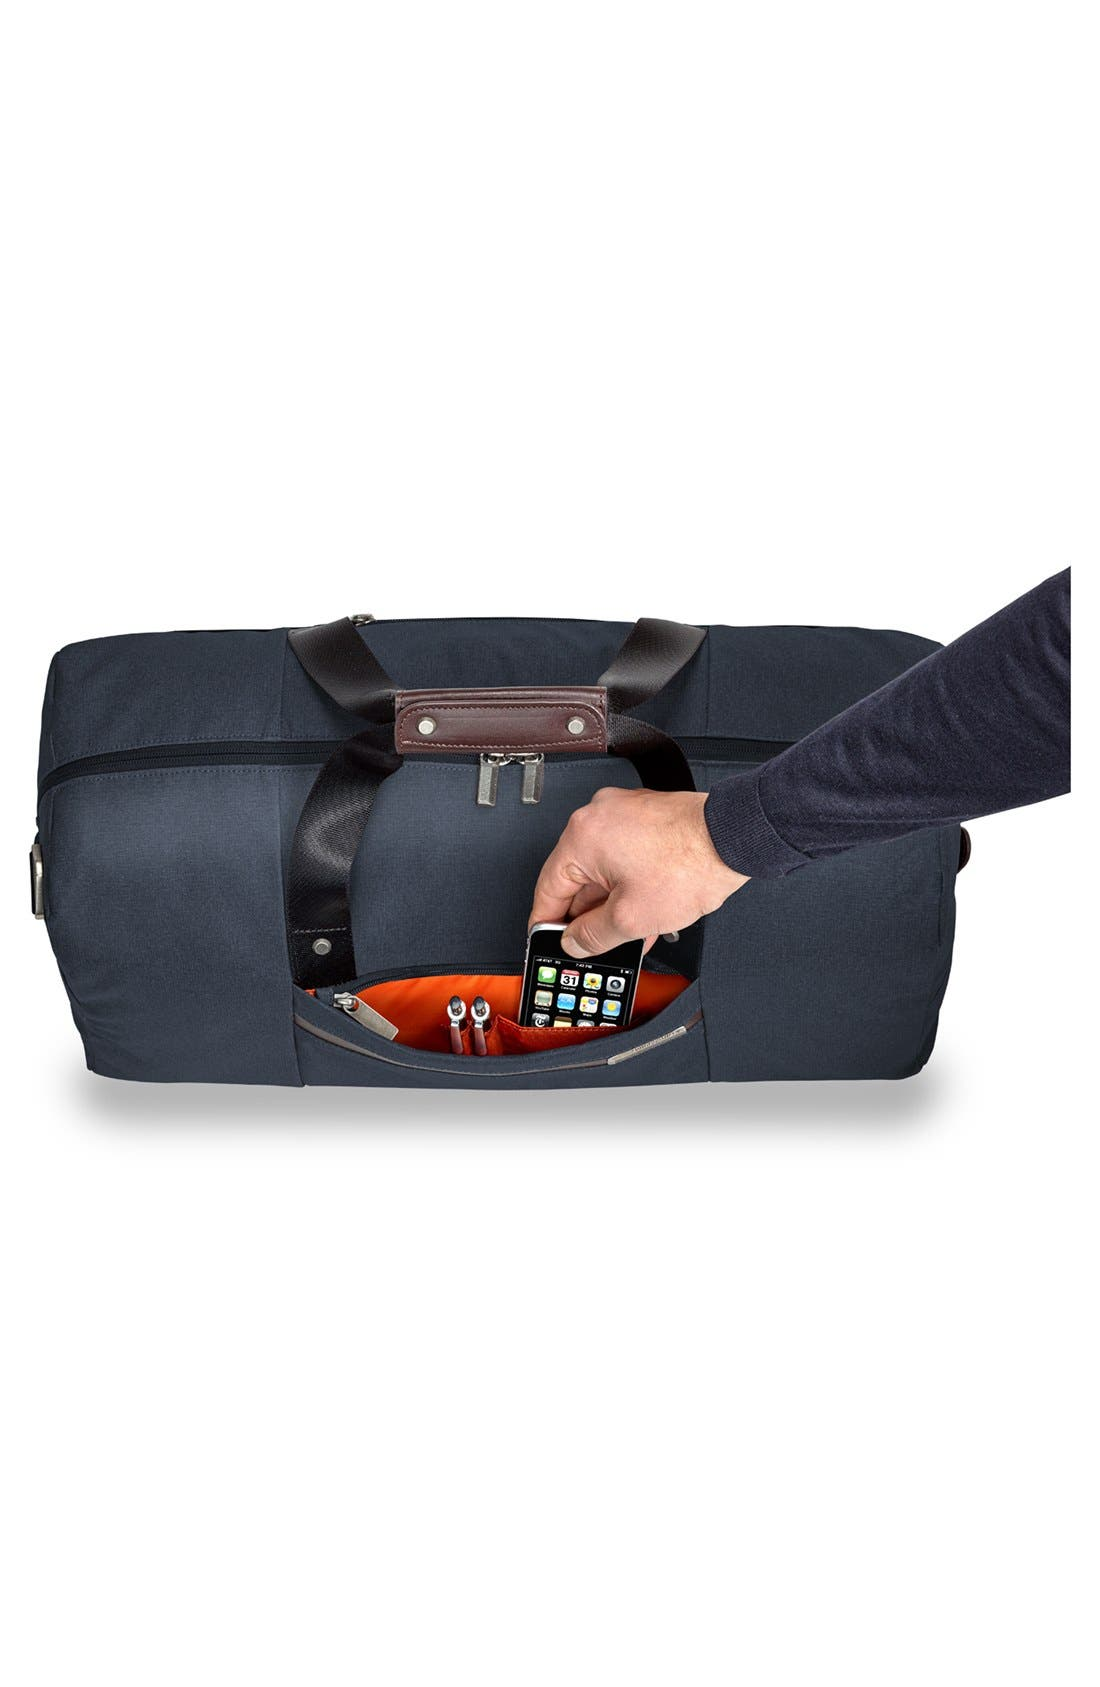 Kinzie Street - Simple Duffel Bag,                             Alternate thumbnail 5, color,                             Navy Blue